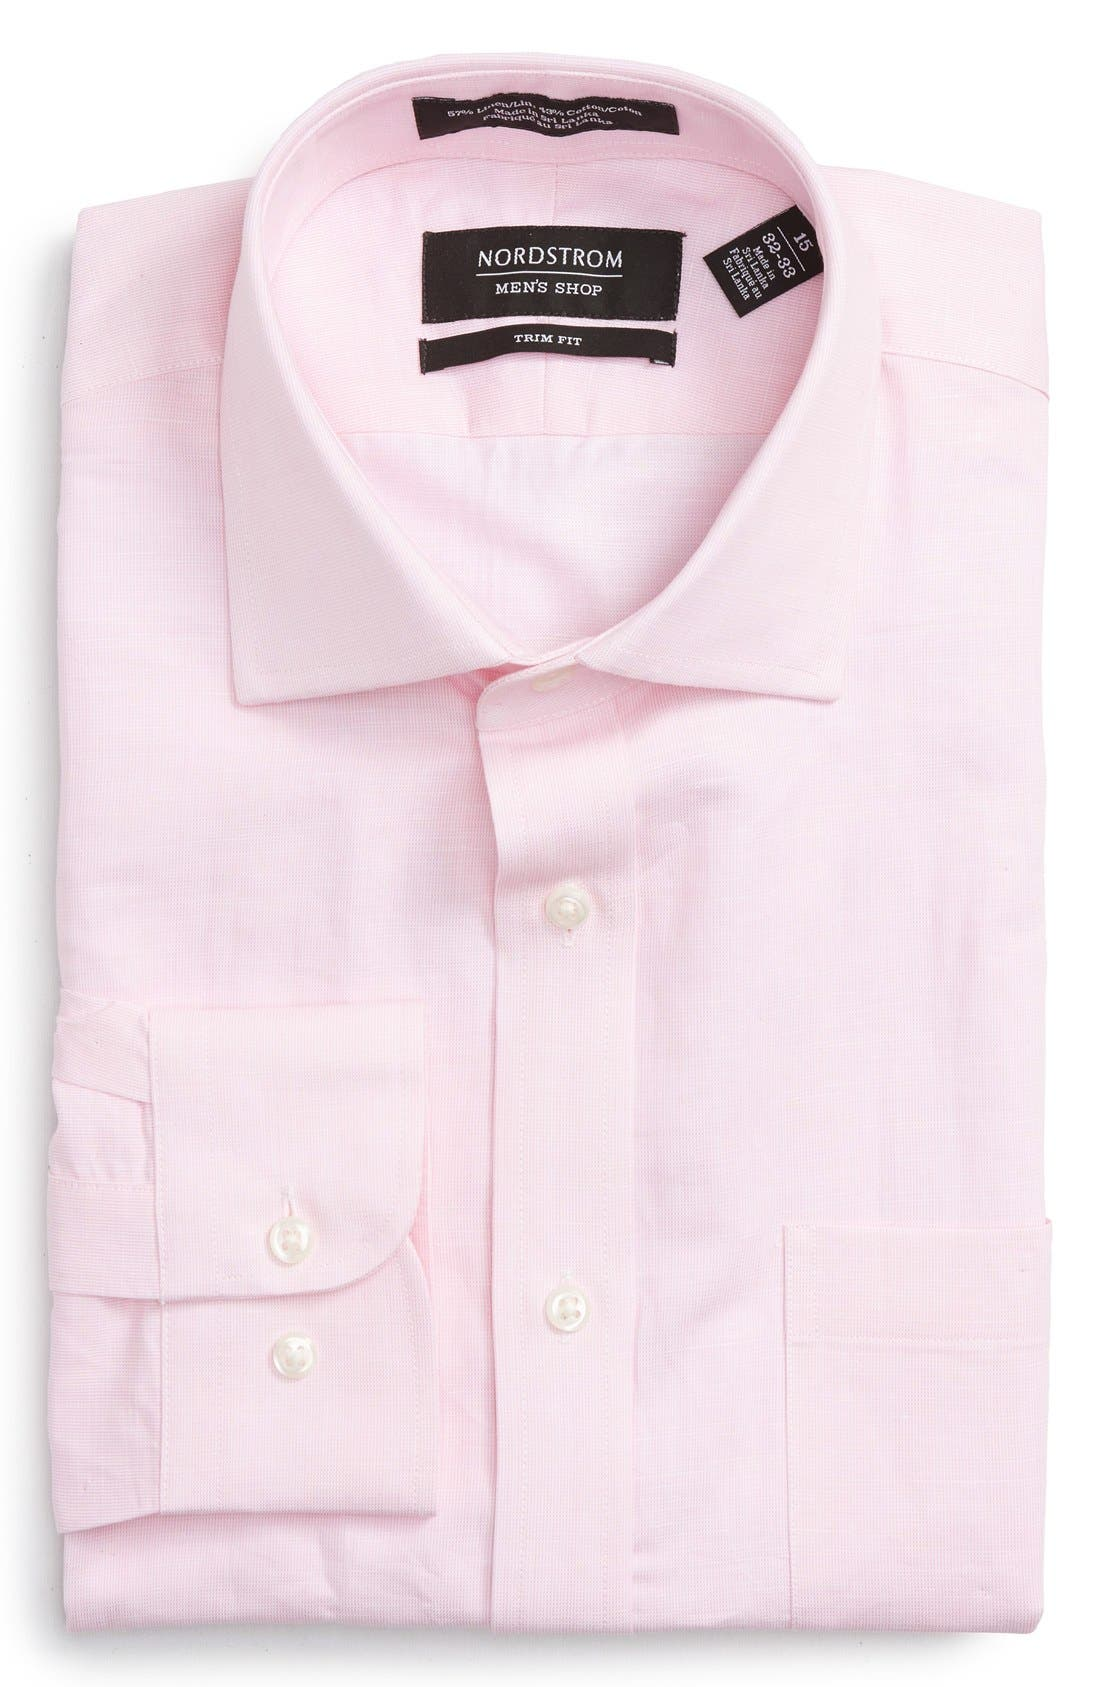 Nordstrom Men's Shop Trim Fit Solid Linen & Cotton Dress Shirt